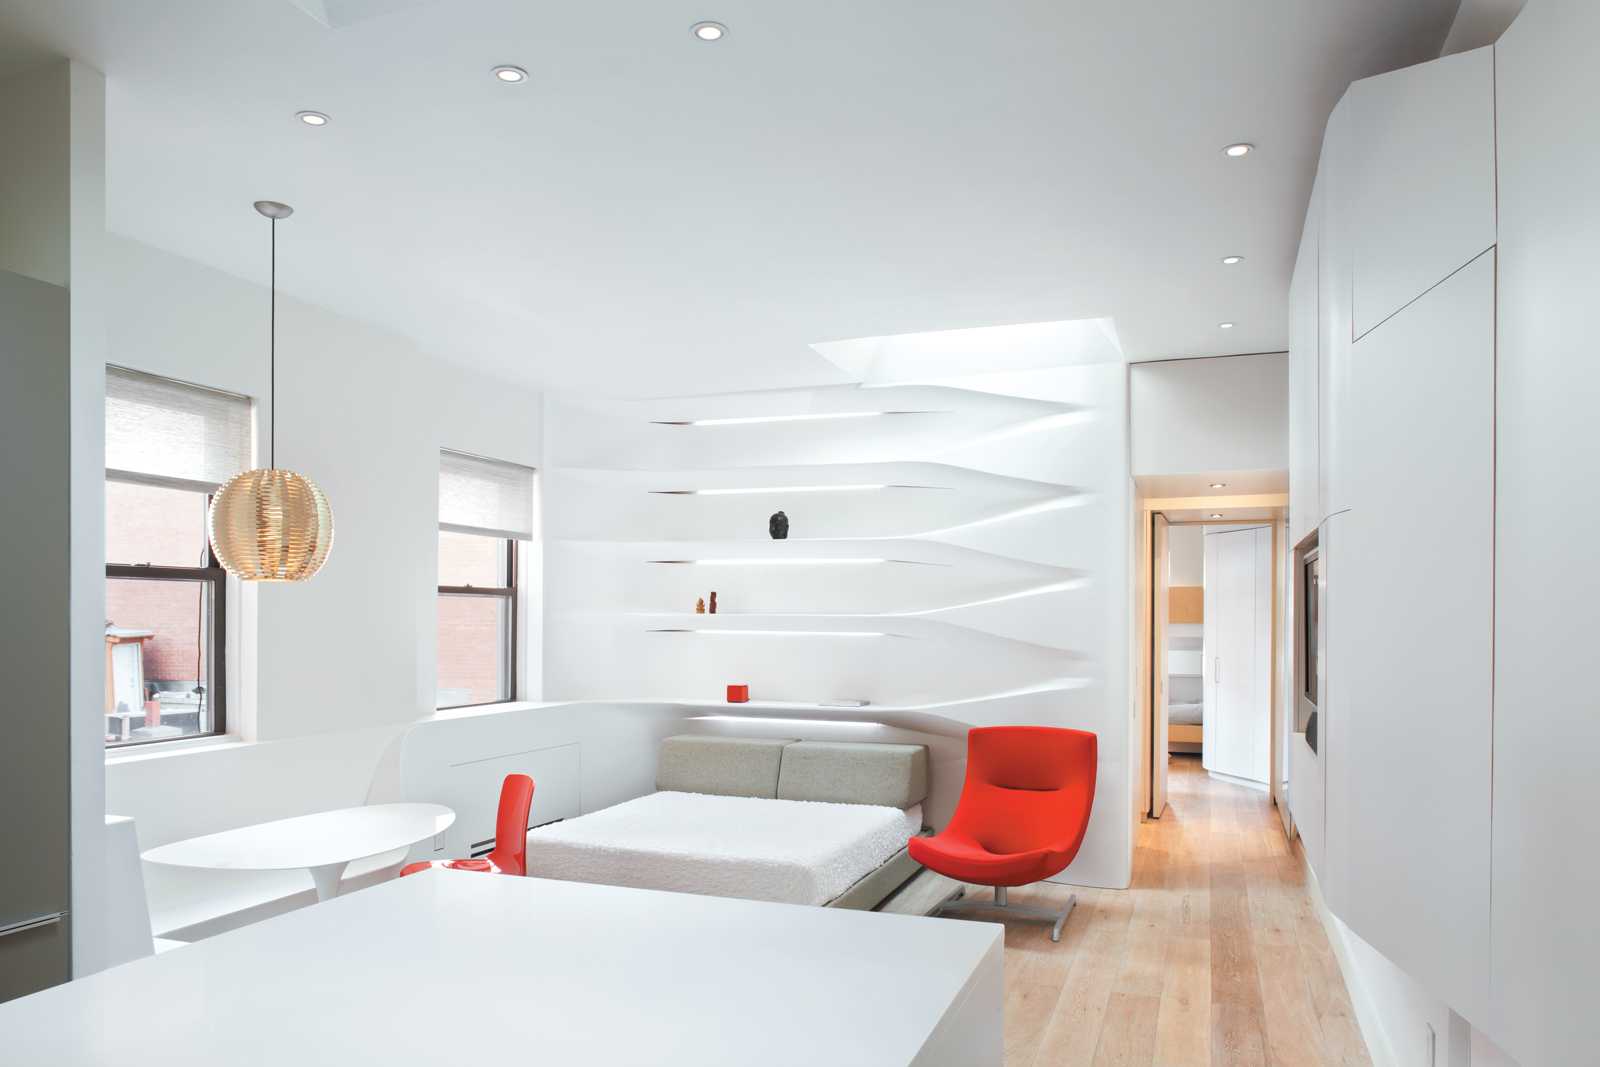 Multipurpose room with minimalist colors